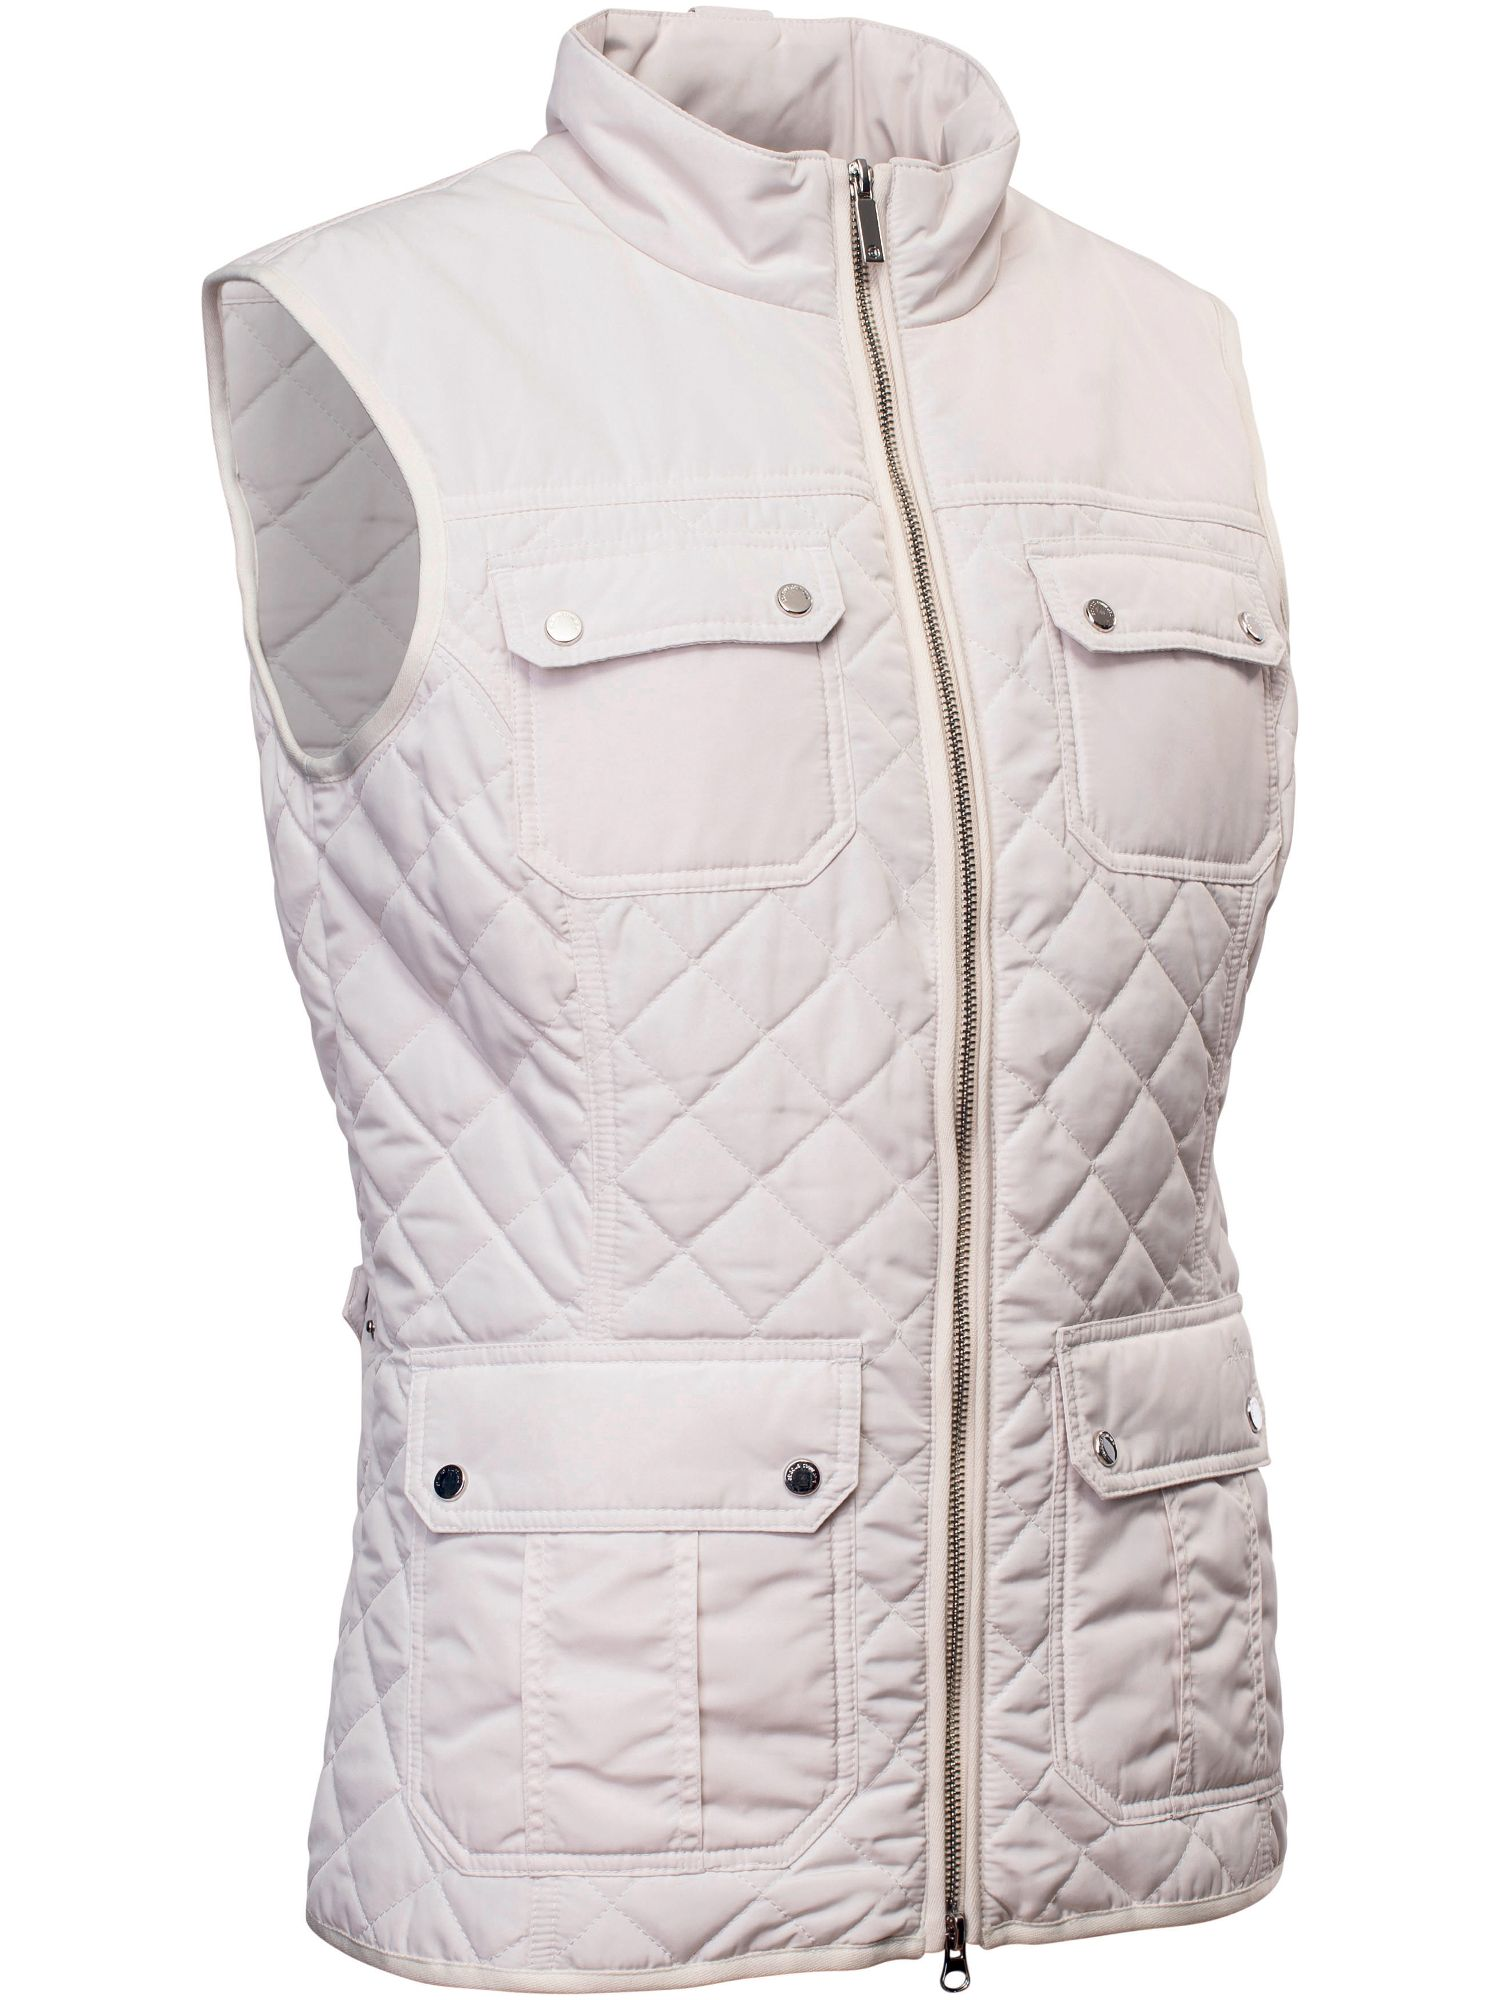 Abacus Holmen Quilted Gilet, White